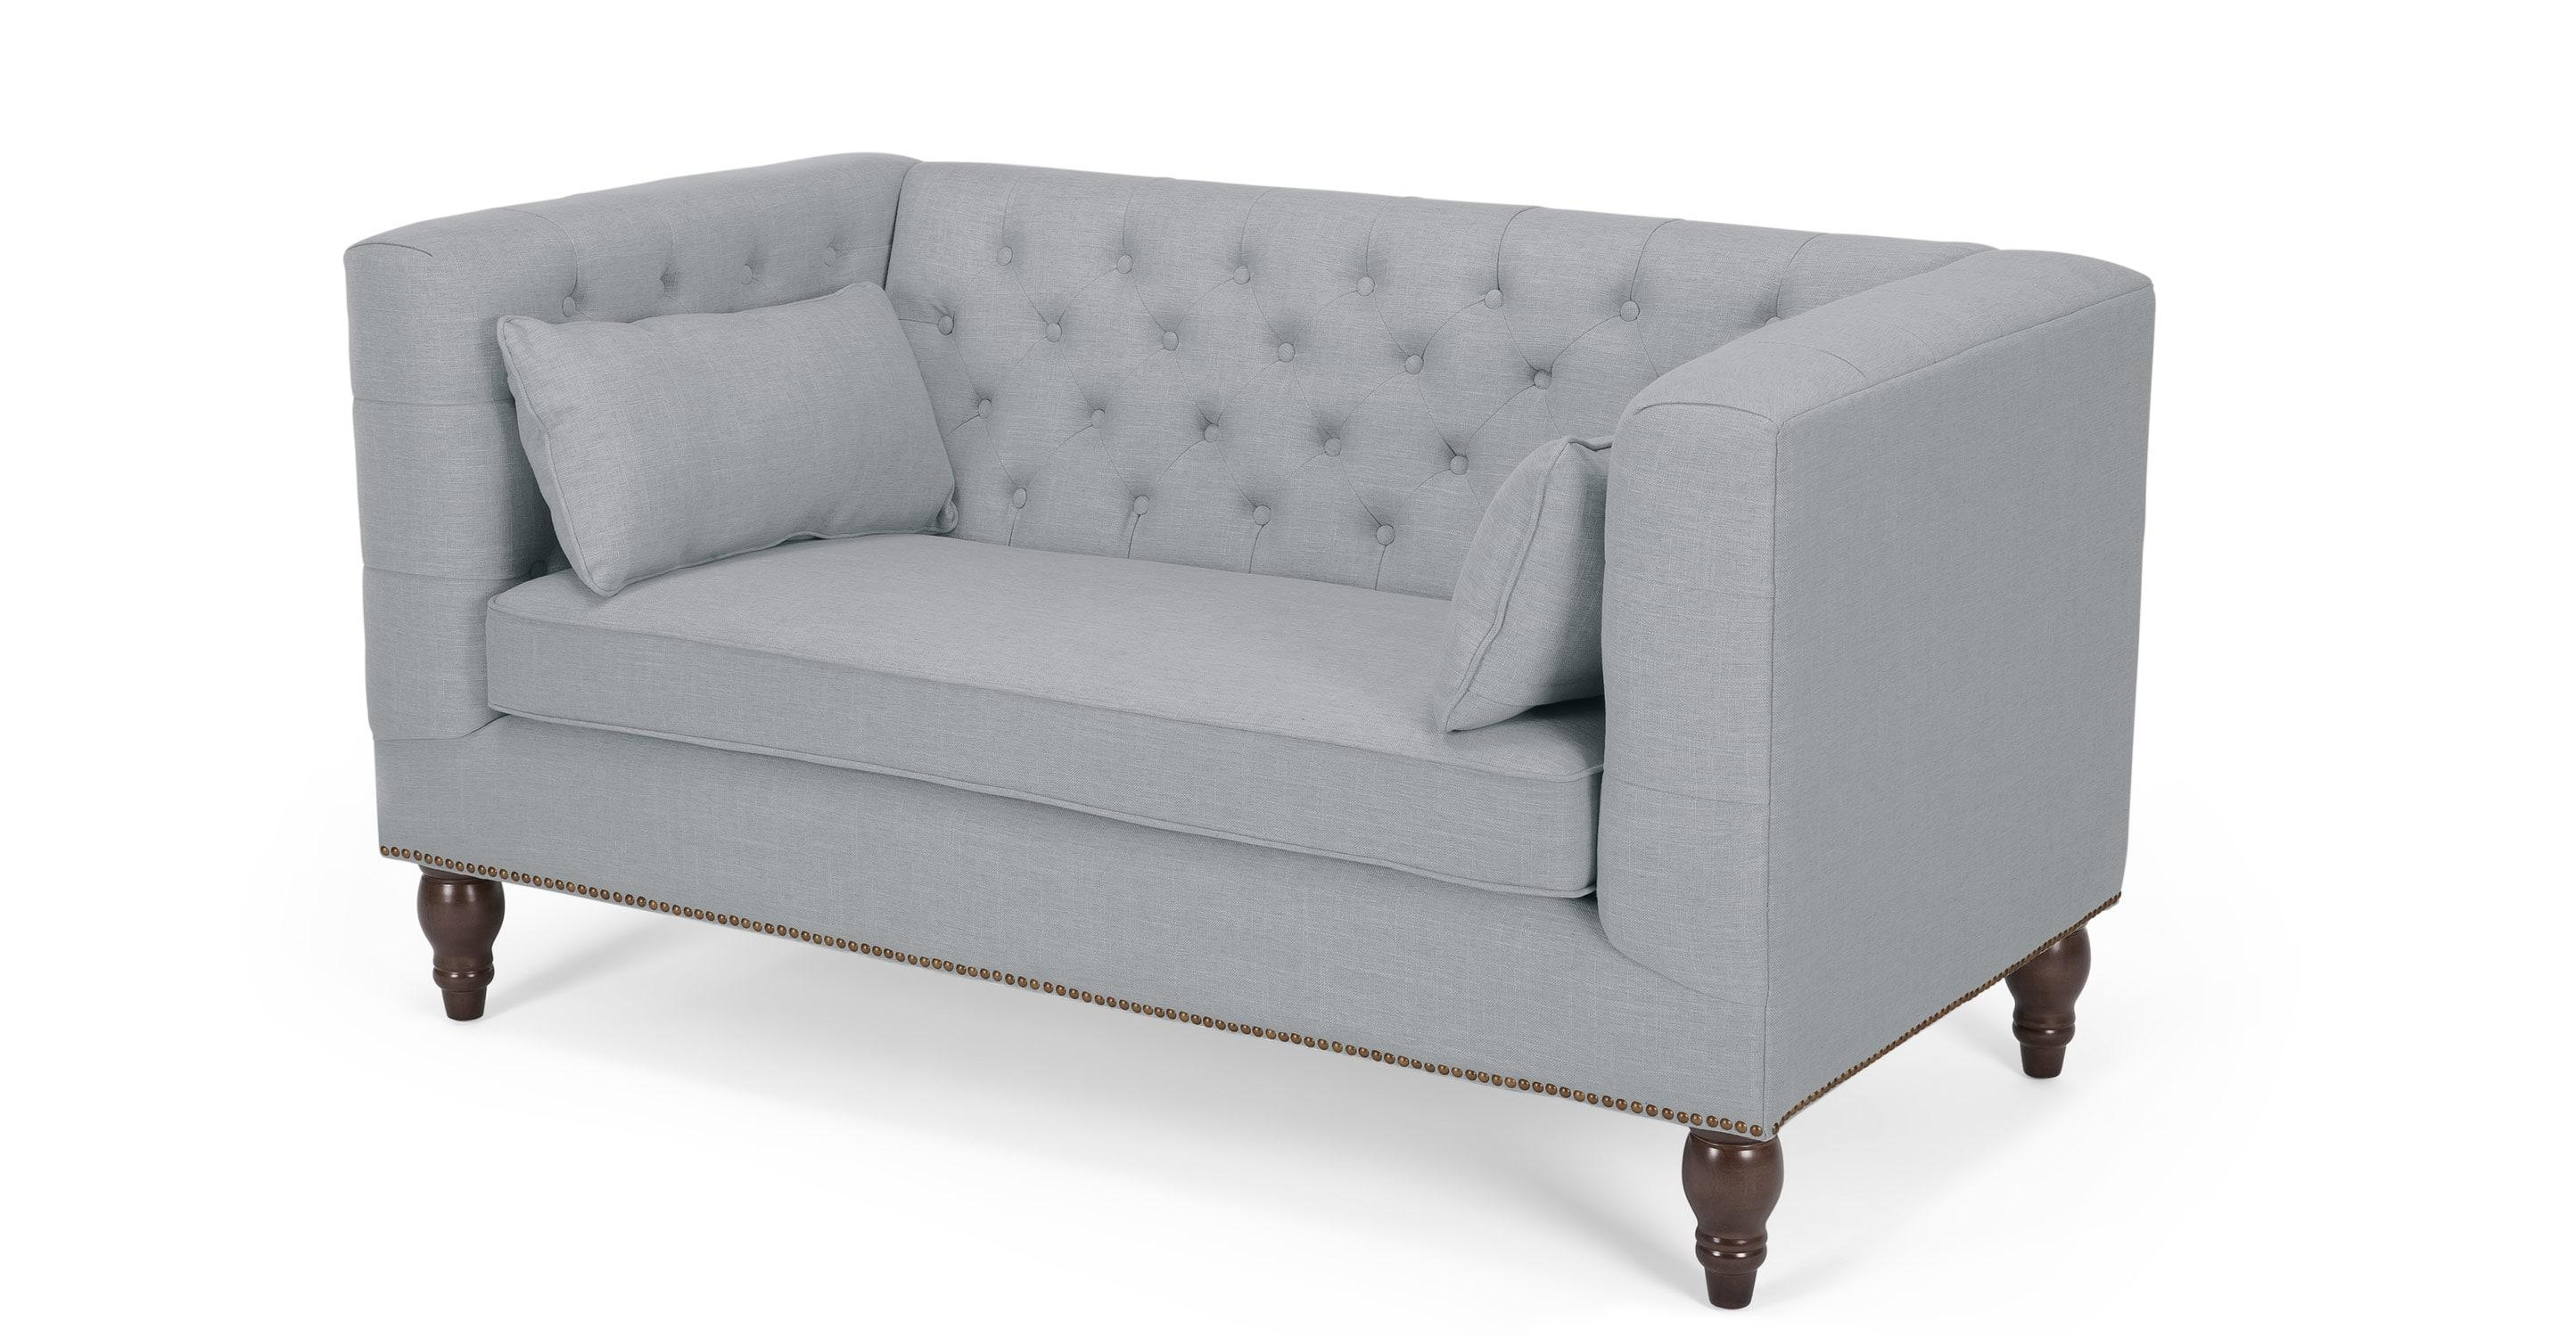 Sofas Center : Seater Sofa Sofas Uk With Chaise Legs Covers2 For Small 2 Seater Sofas (Image 15 of 20)